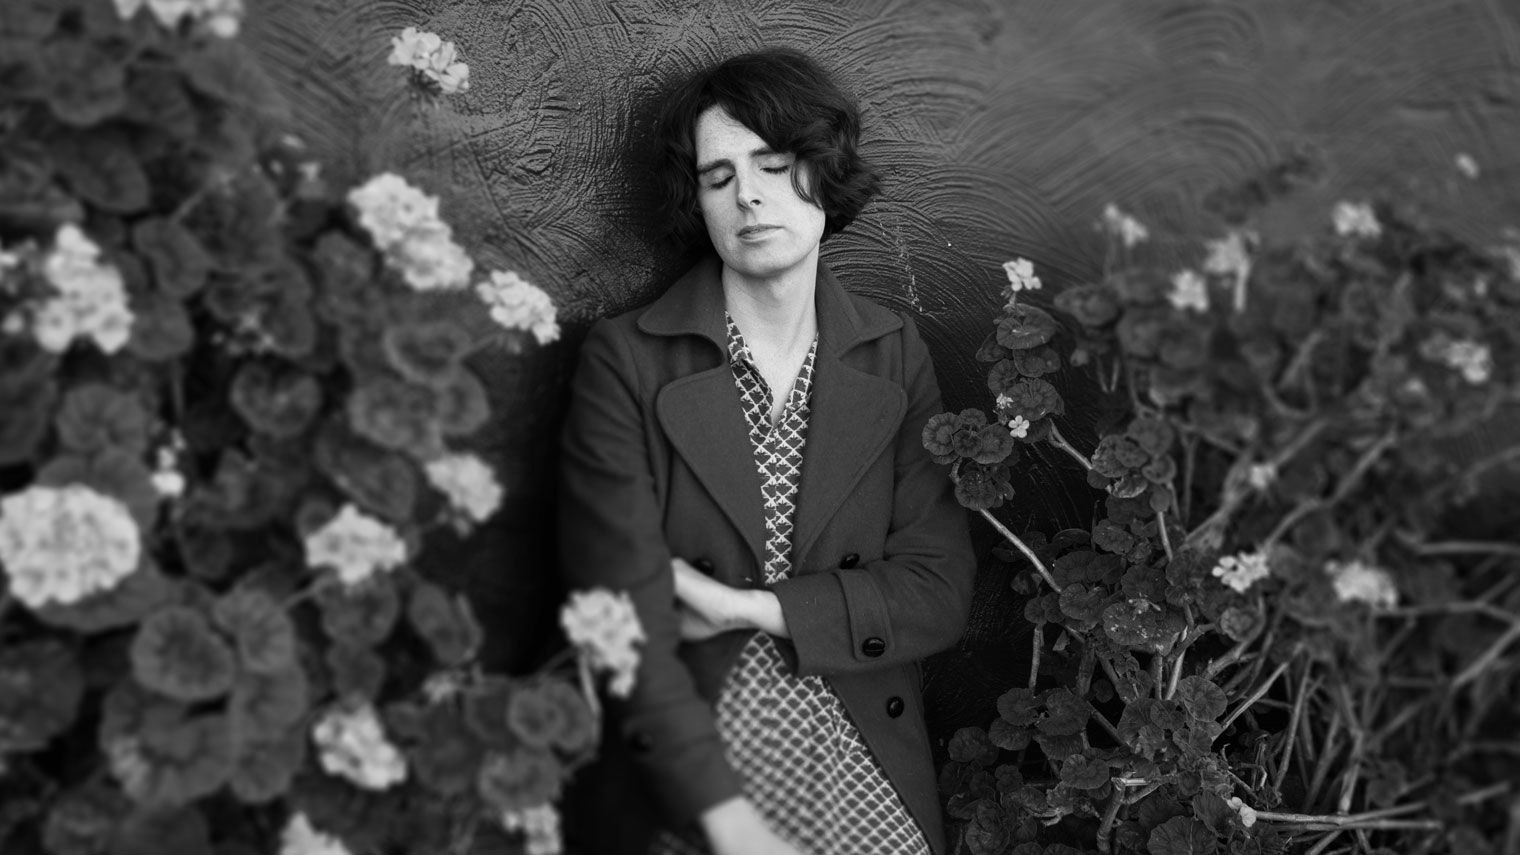 Chloe Alison Escott leans against a wall, eyes closed, surrounded by geranium bushes.